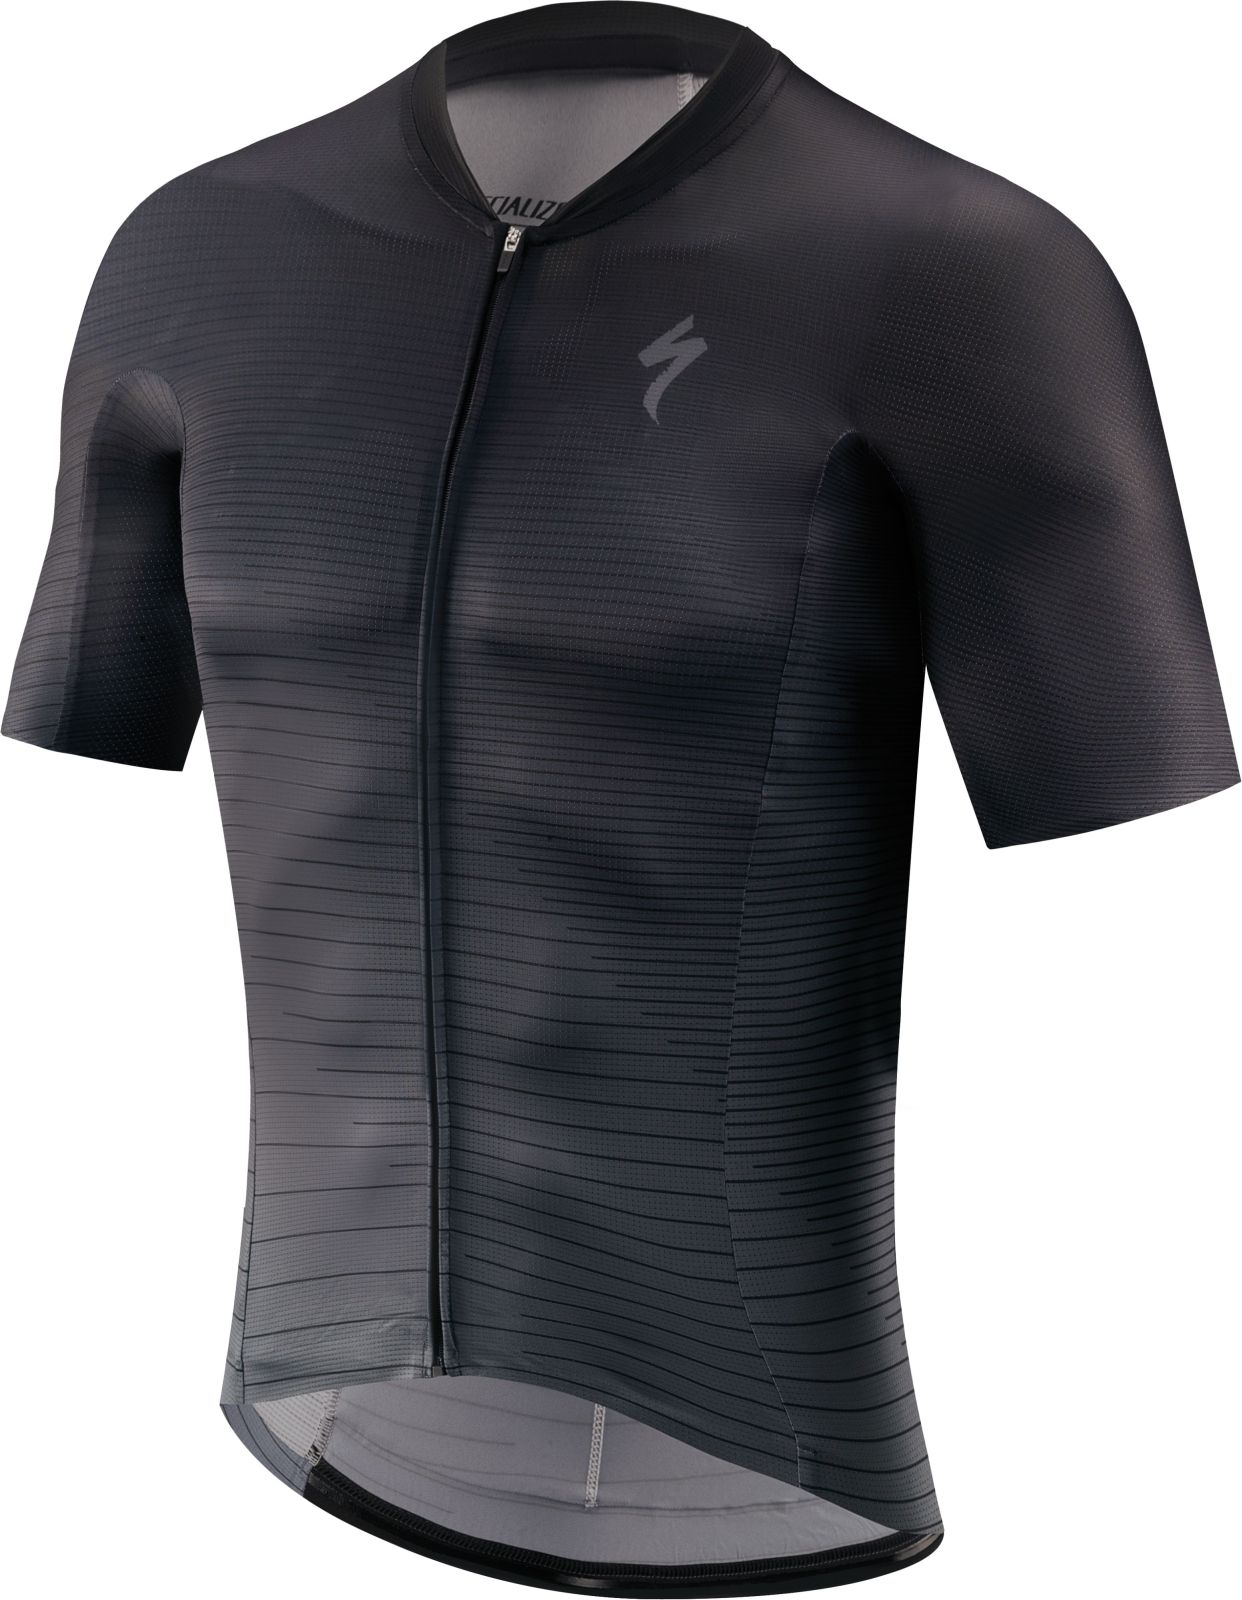 Specialized SL R Jersey SS - black/charcoal L